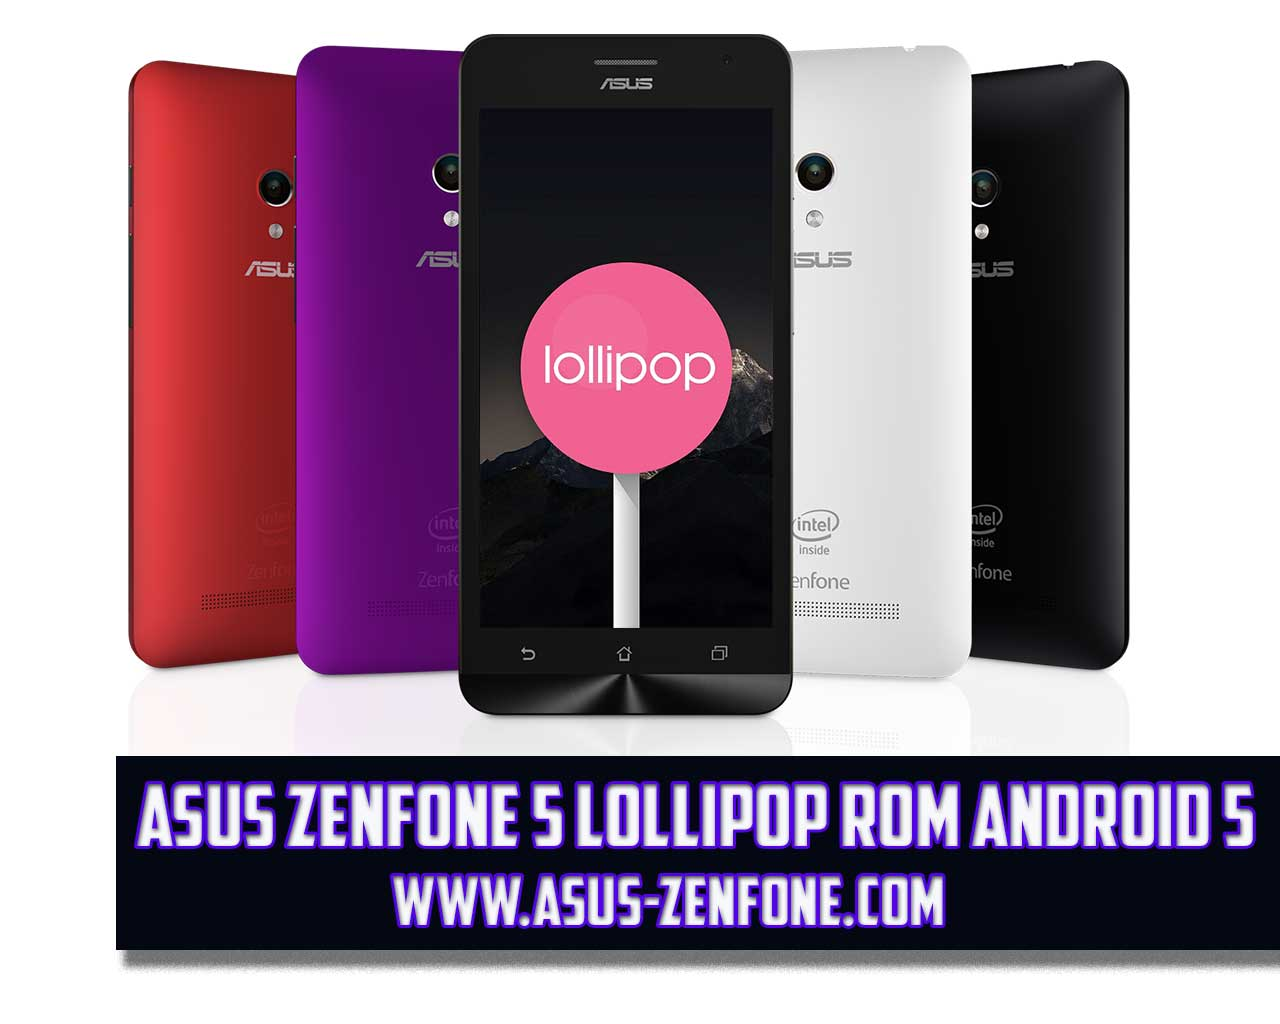 ROM] ASUS Zenfone 5 A500CG Android 5.0 Lollipop Download